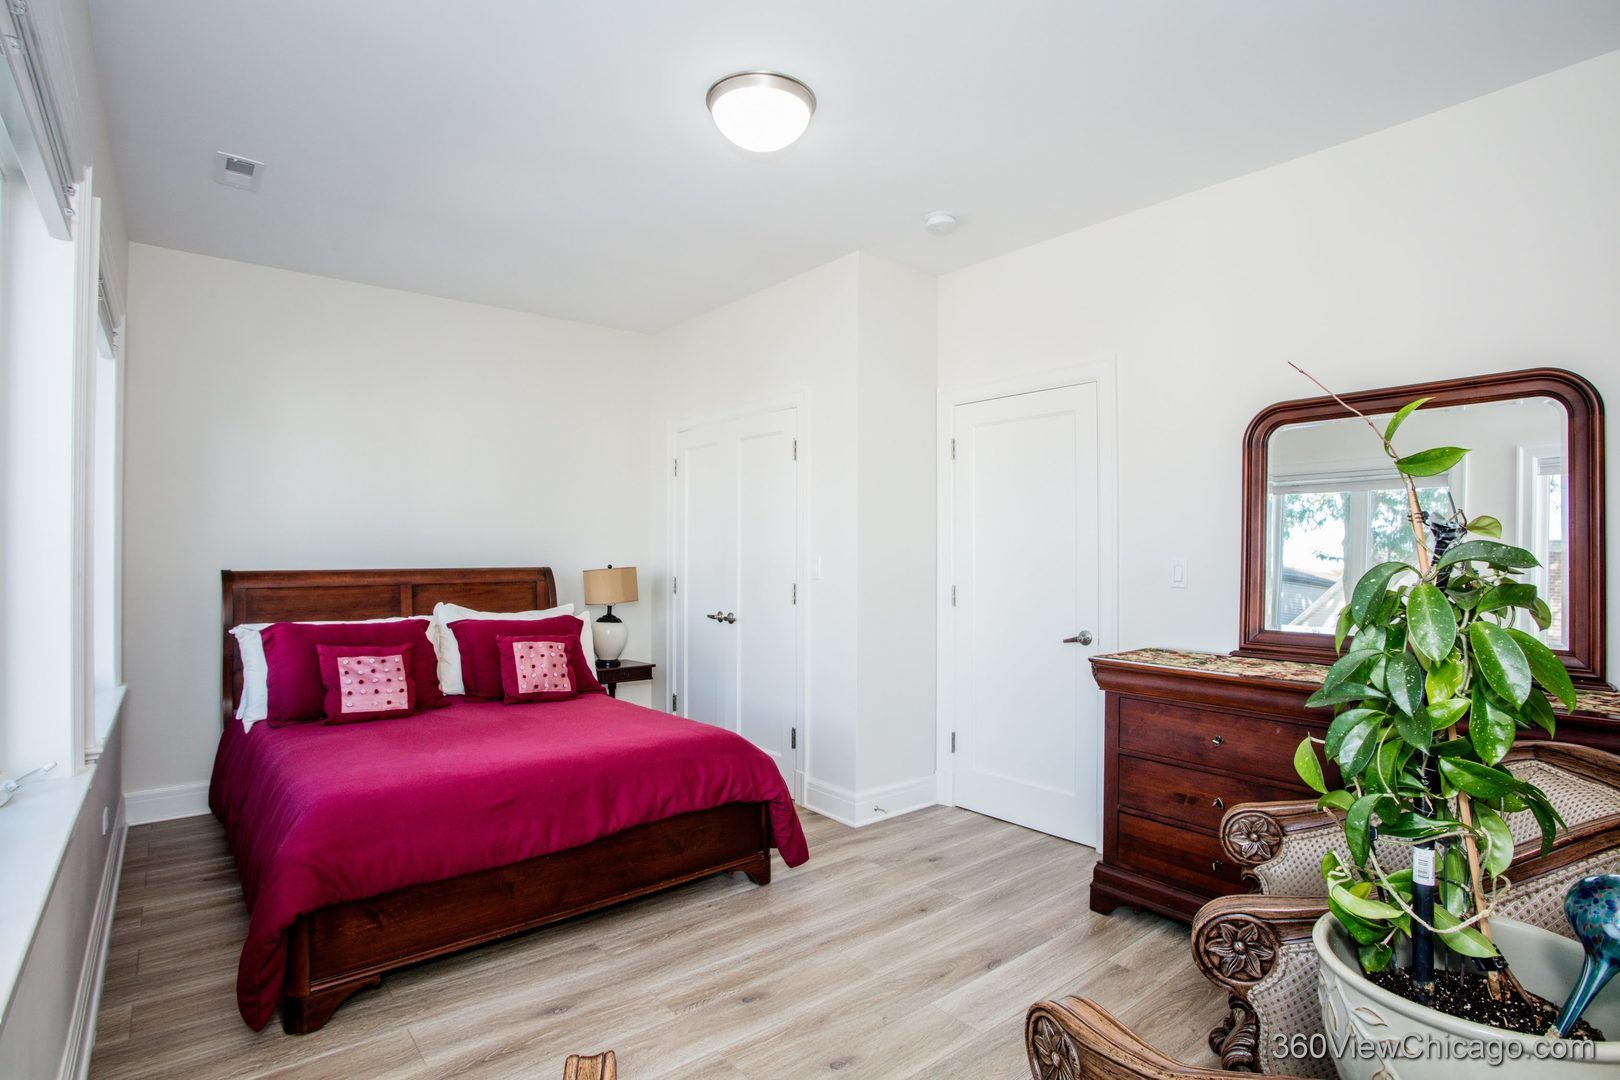 Photo 26: Photos: 1733 Troy Street in Chicago: CHI - Humboldt Park Residential for sale ()  : MLS®# 10911567